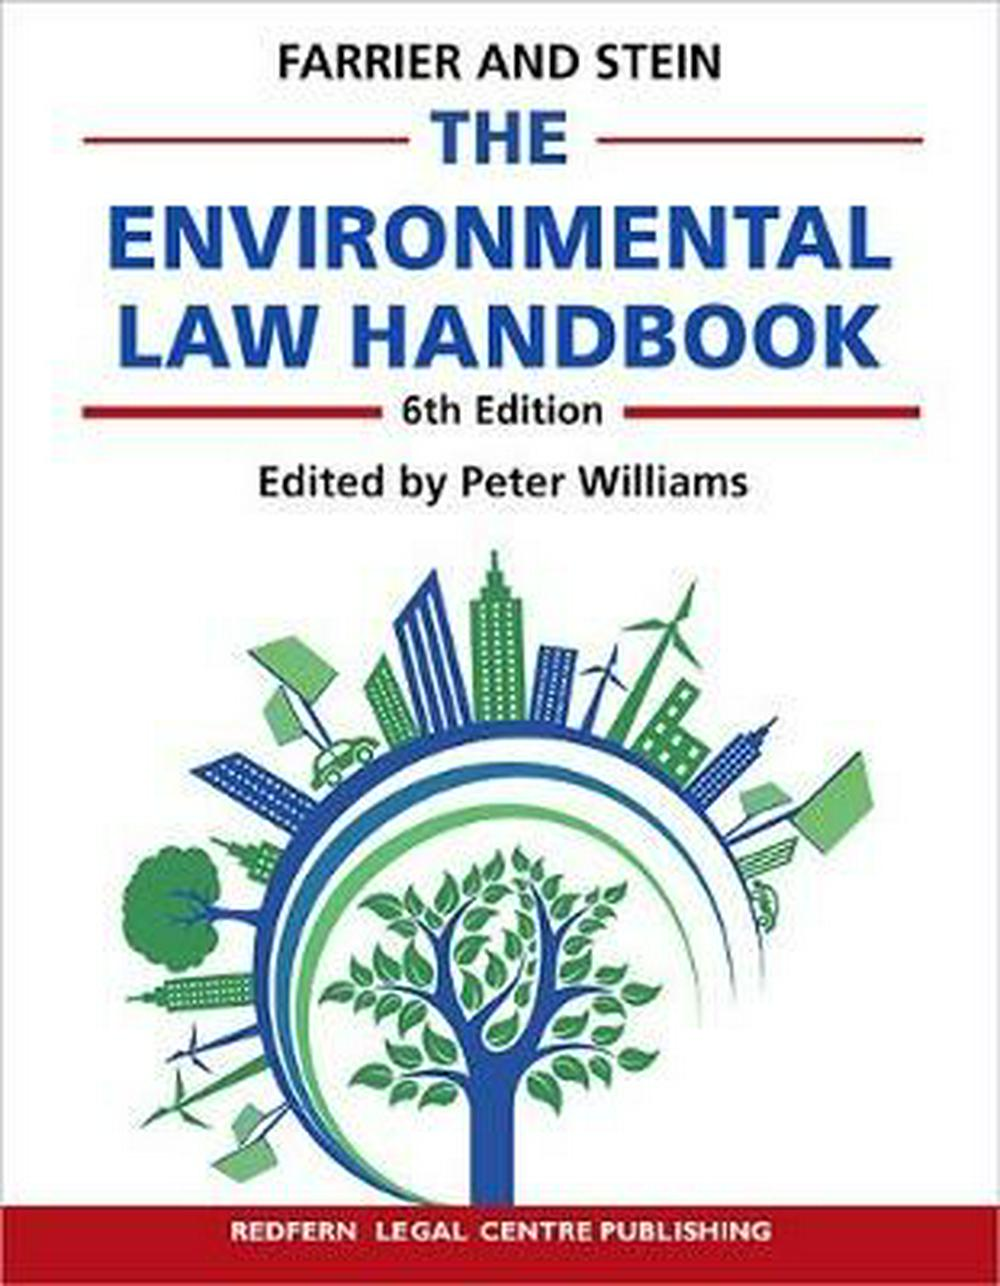 The Environmental Law Handbook: Planning & Land Use in NSW